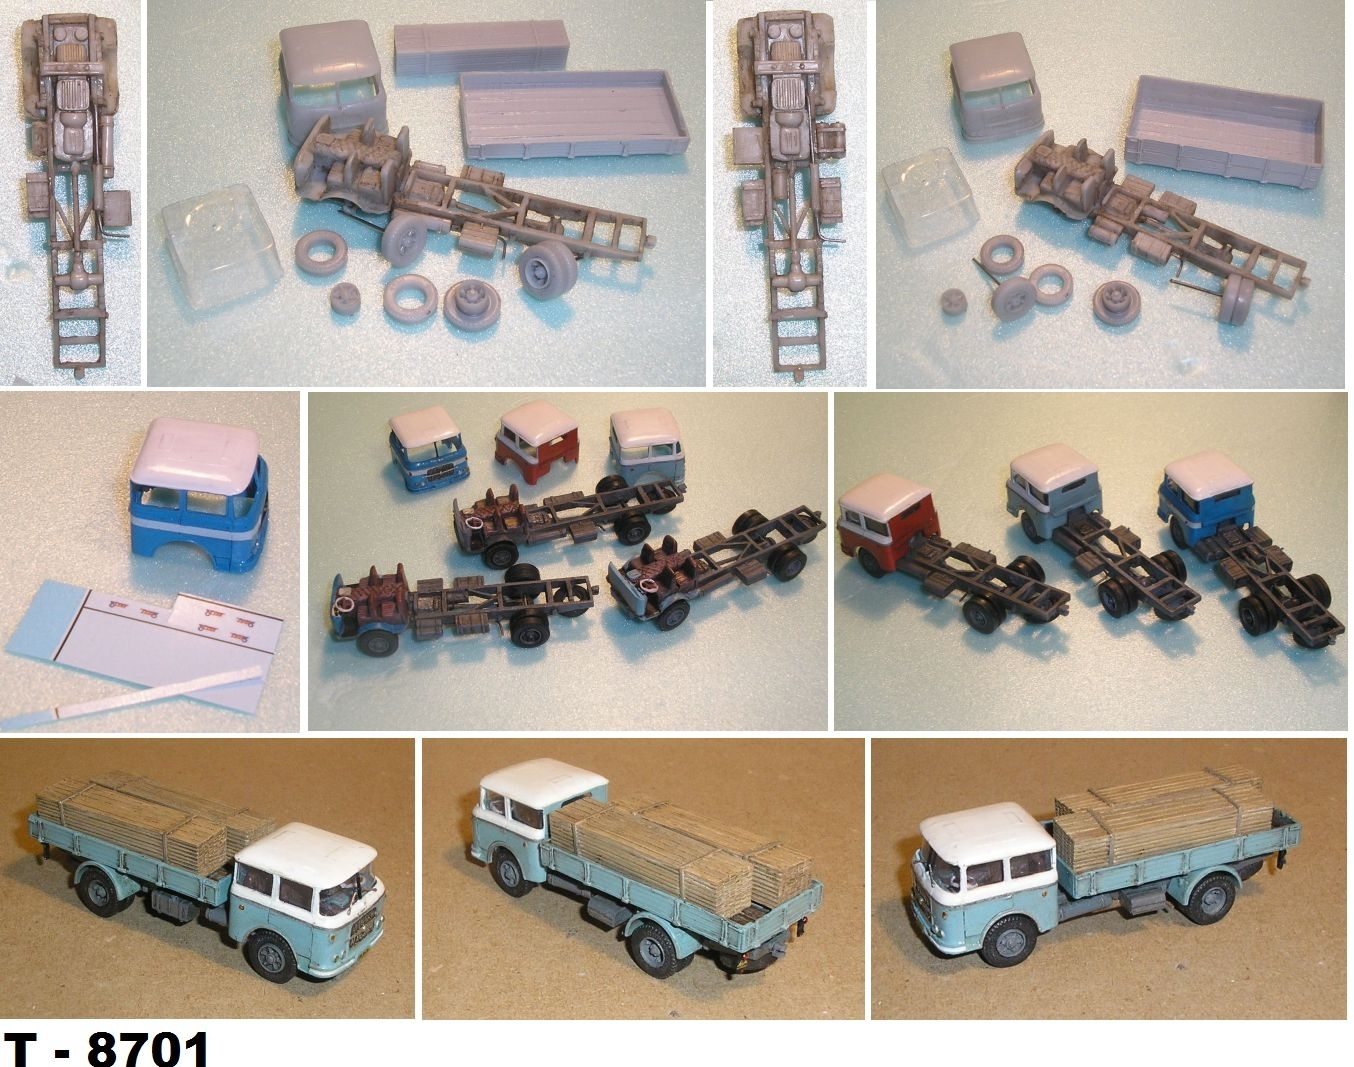 Škoda 706 RT valník 1957-1970 1:87 Resin Kit TP